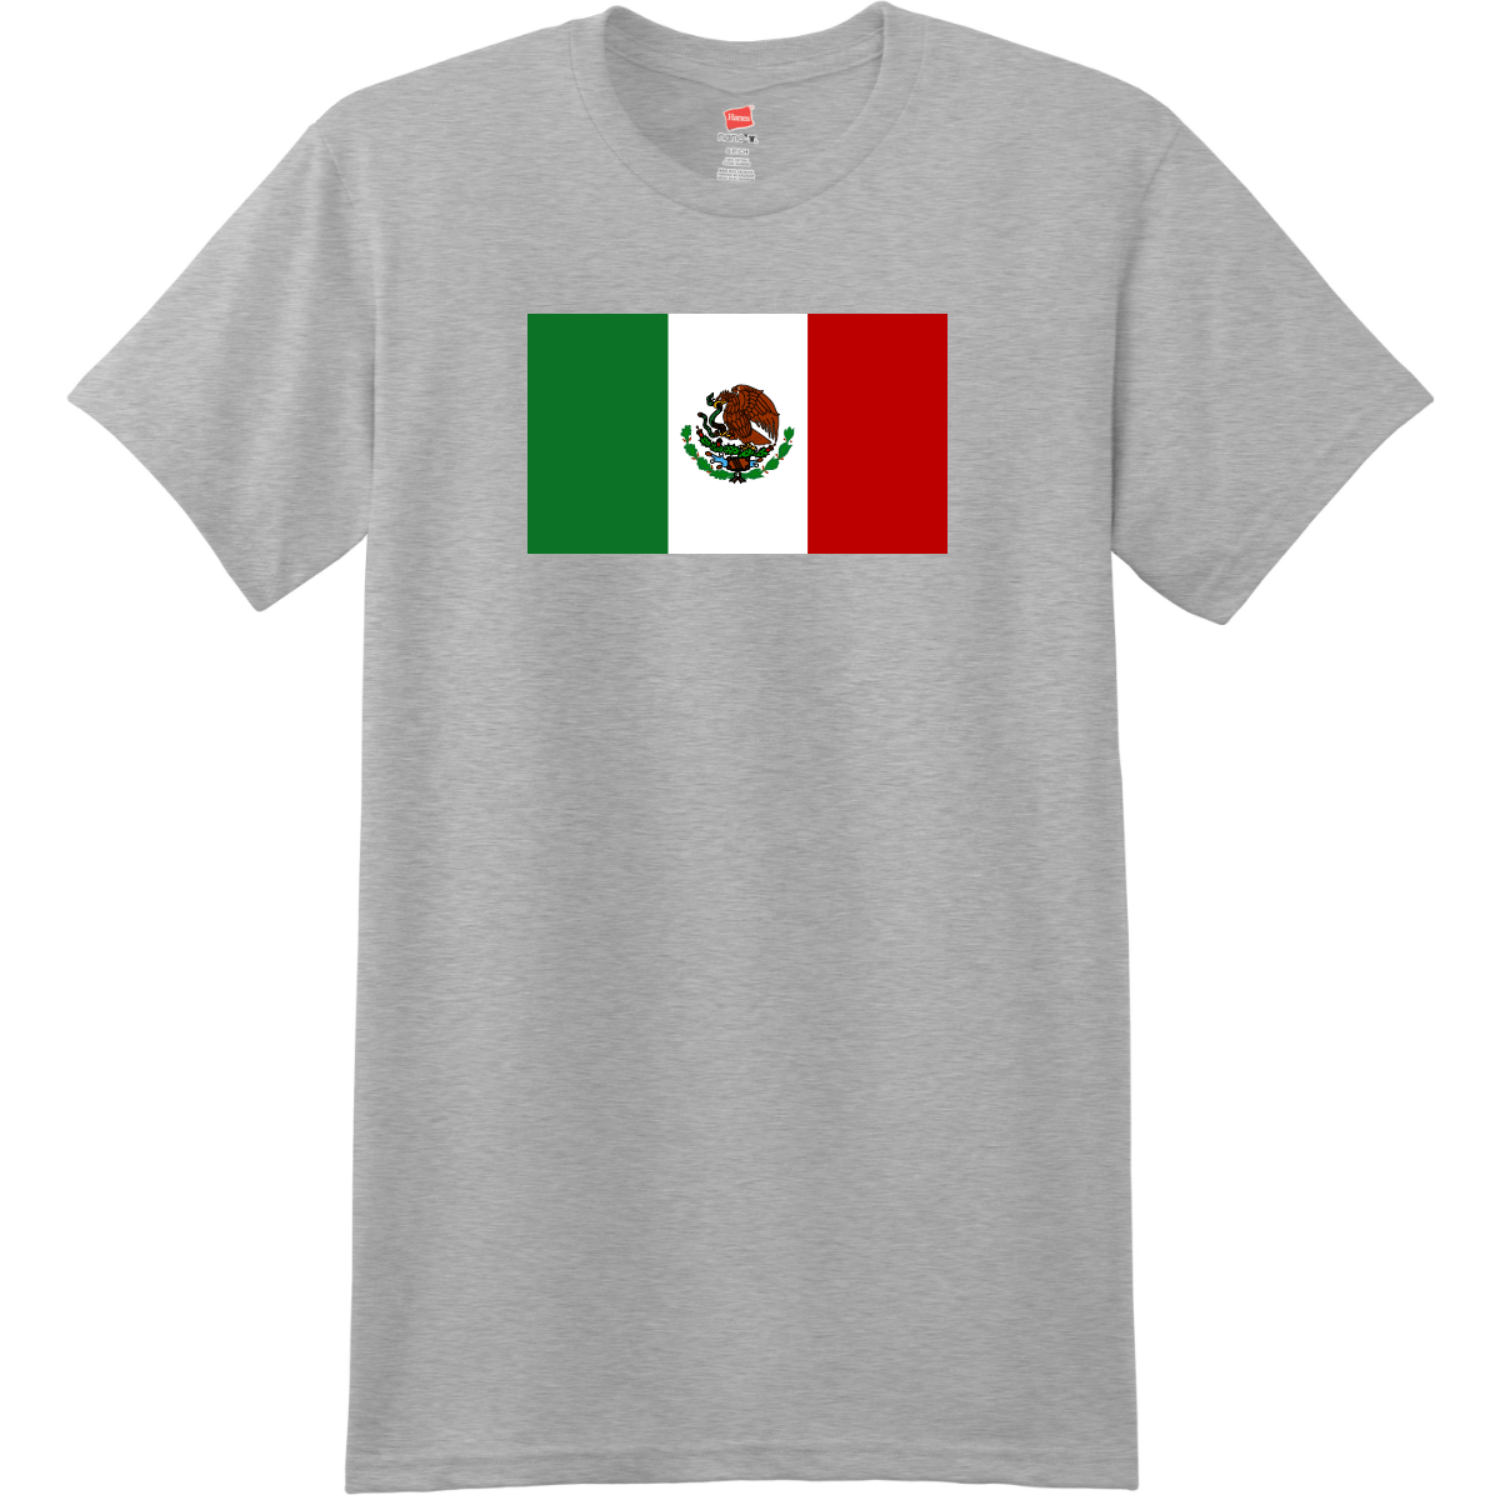 Mexico Flag T Shirt Light Steel Hanes Nano 4980 Ringspun Cotton T Shirt